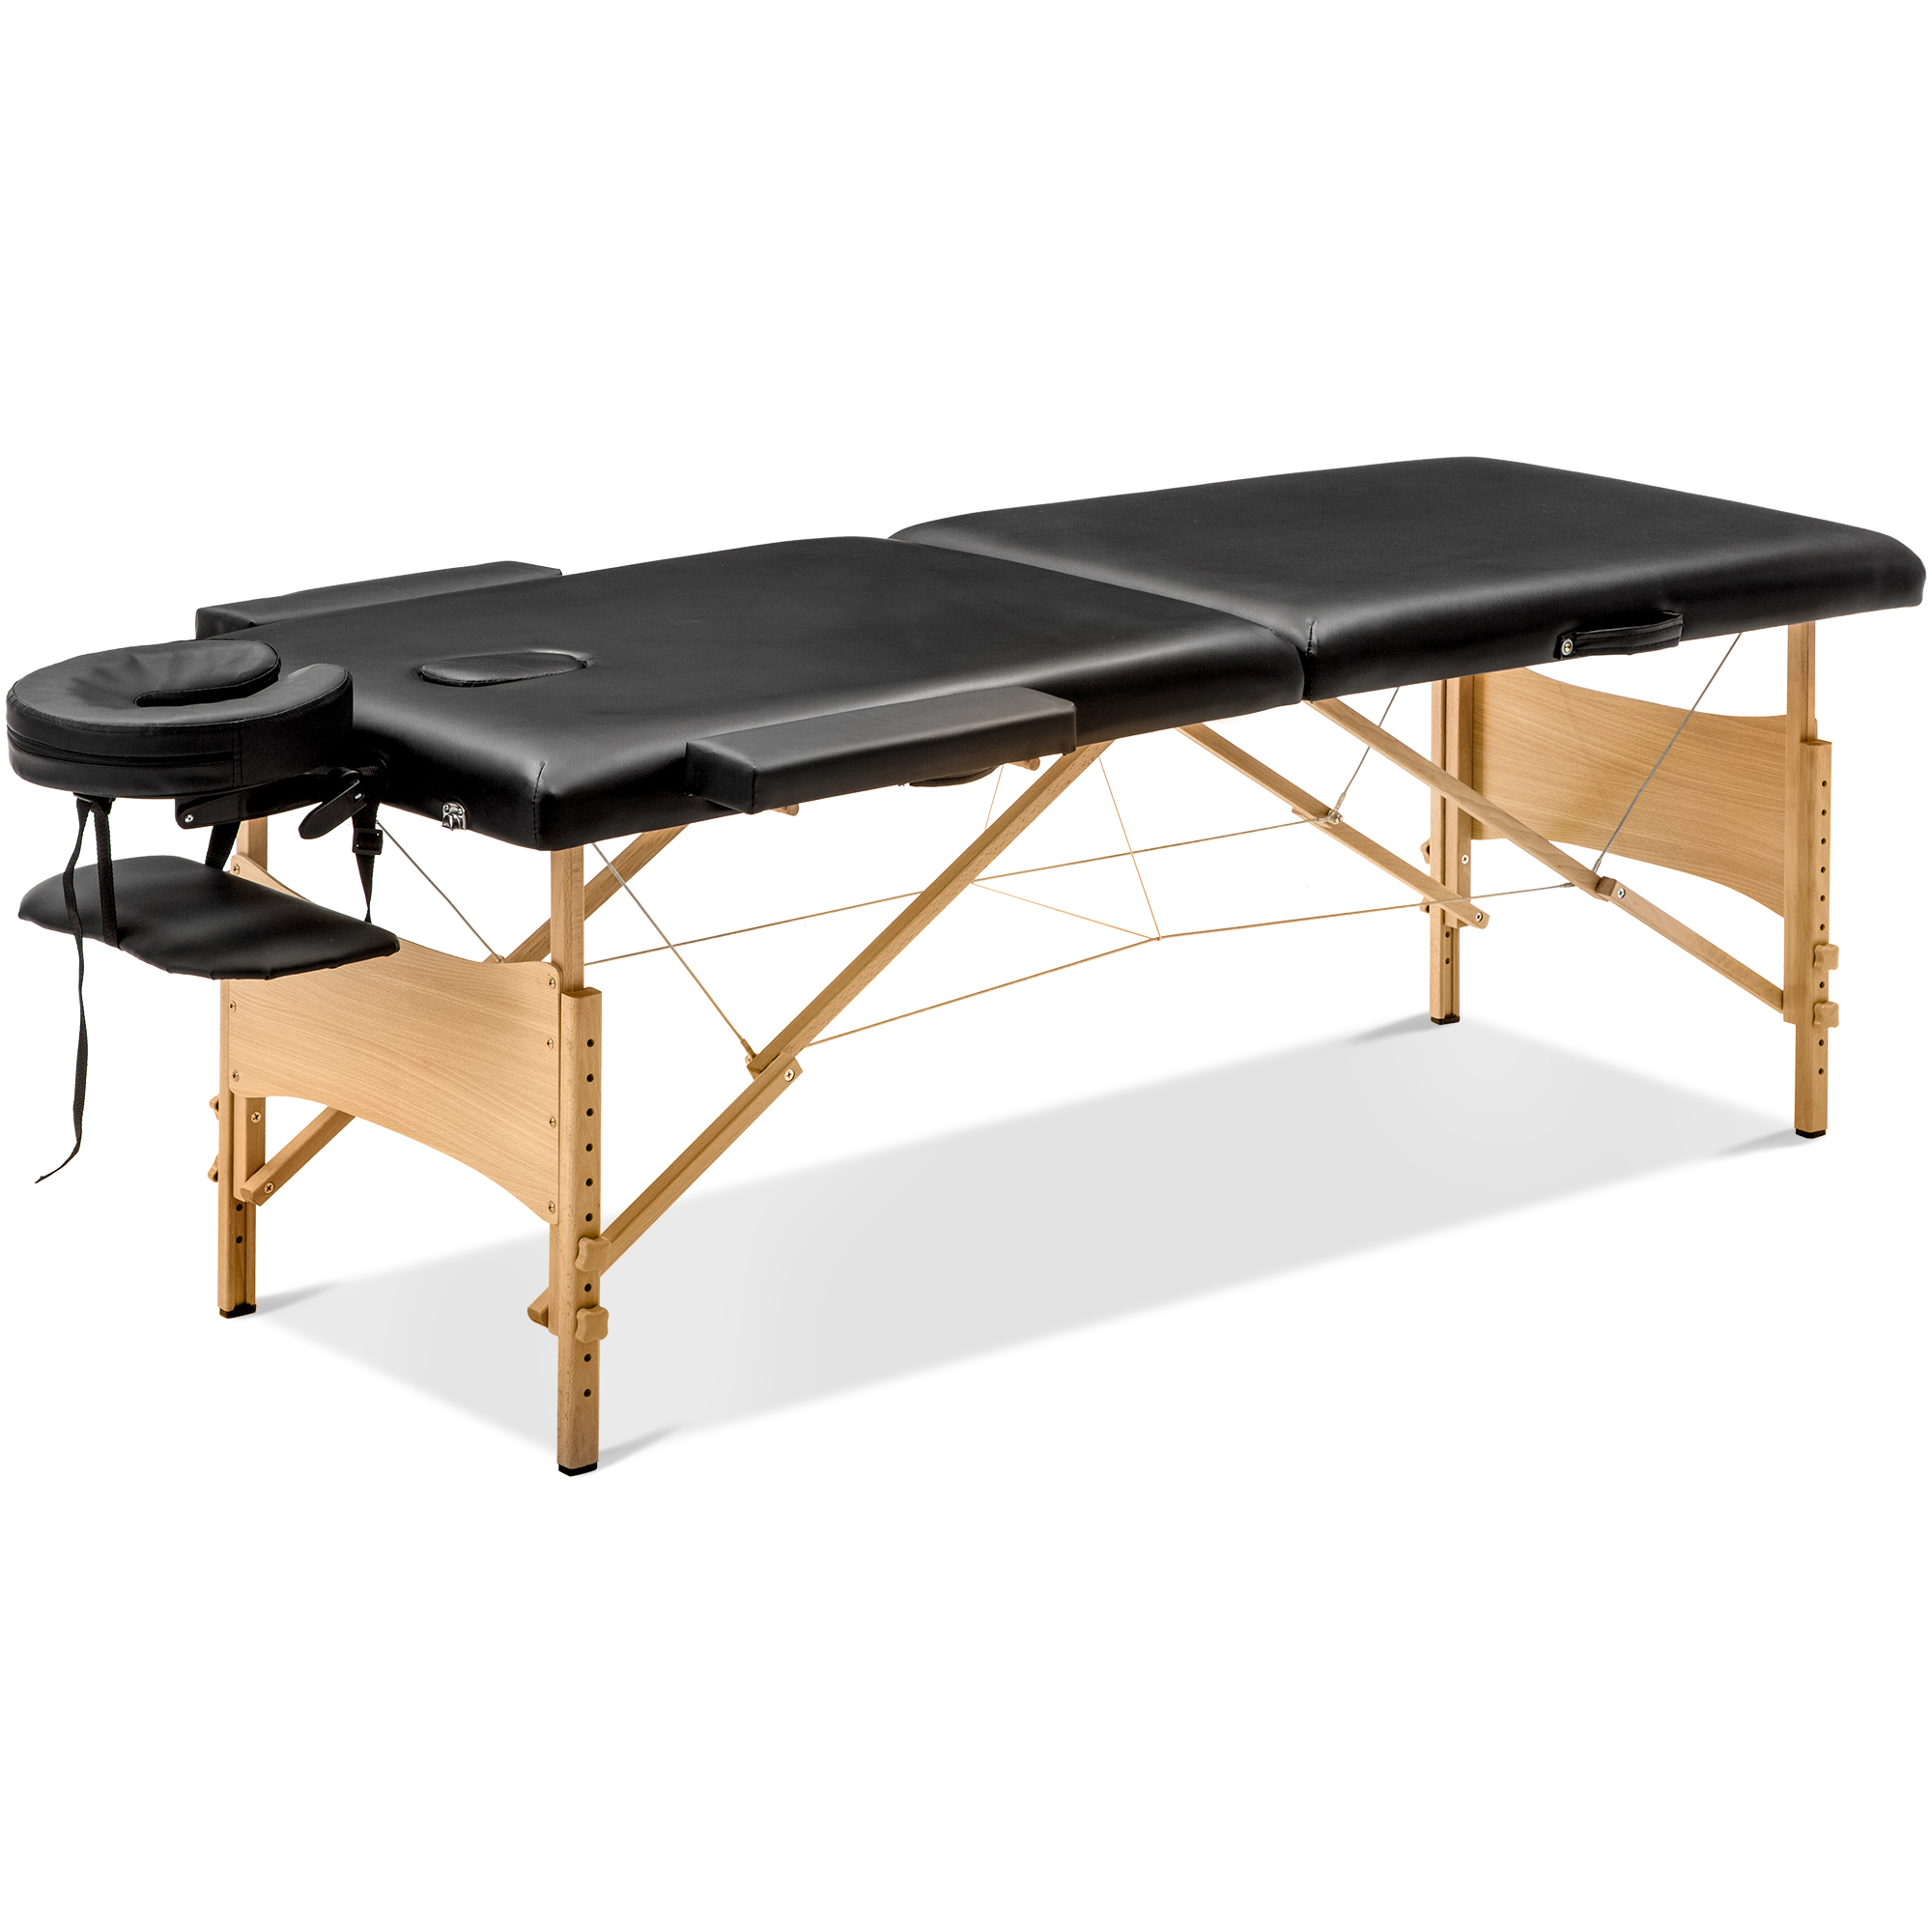 2 Sections Portable Foldable Aluminum 84 Inch Massage Table SPA Bed With Carry Case Beauty Salon Therapy Massage Bed Treatment